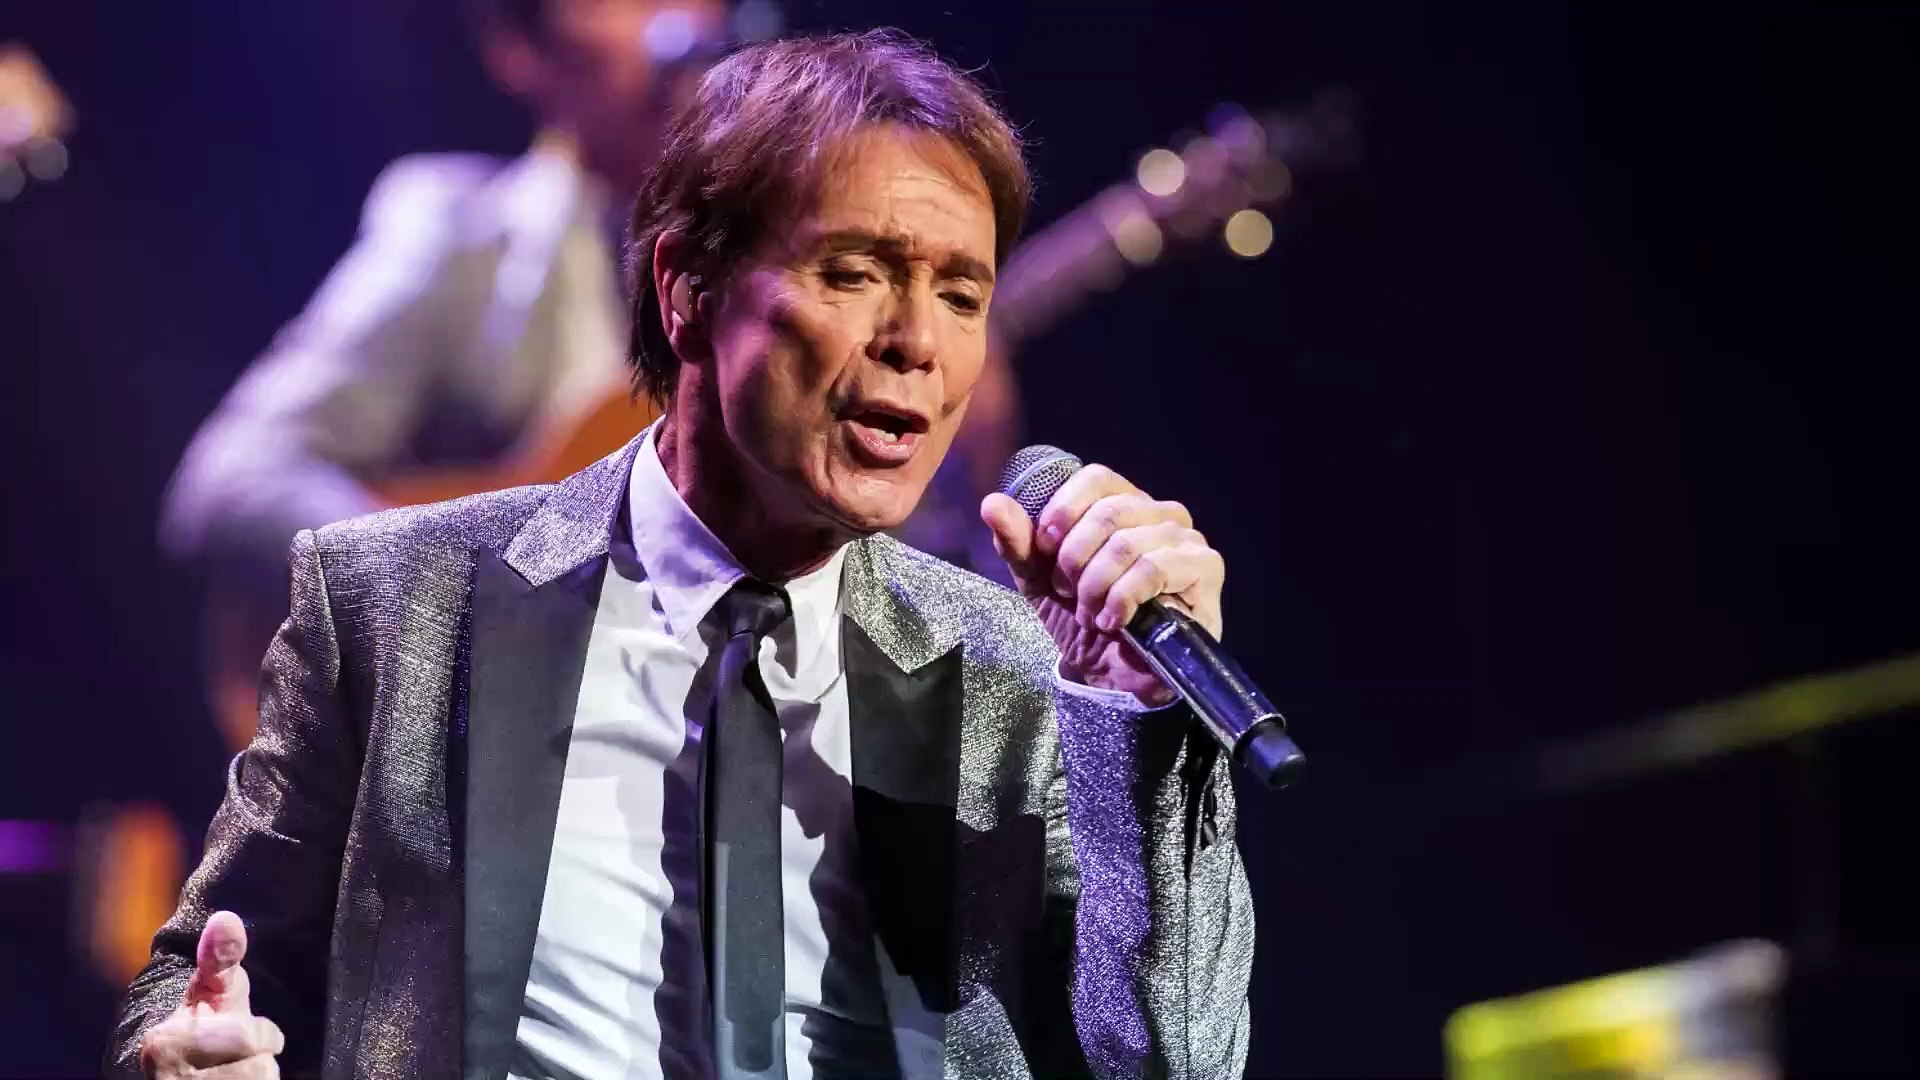 Cliff Richard facts